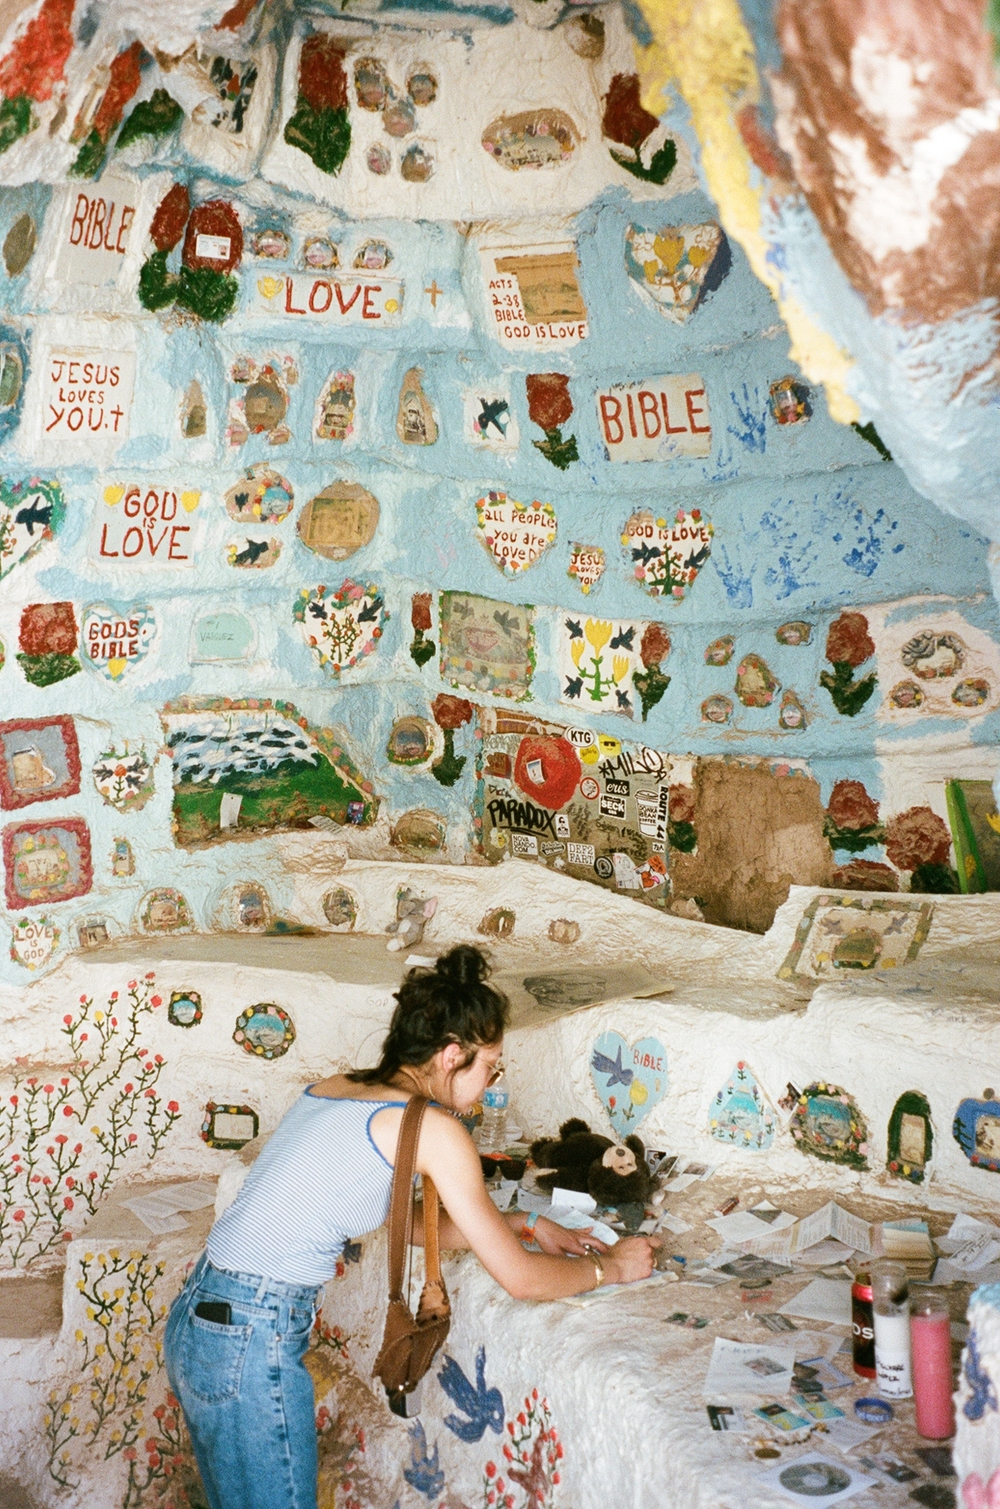 Salvation Mountain in Niland, California